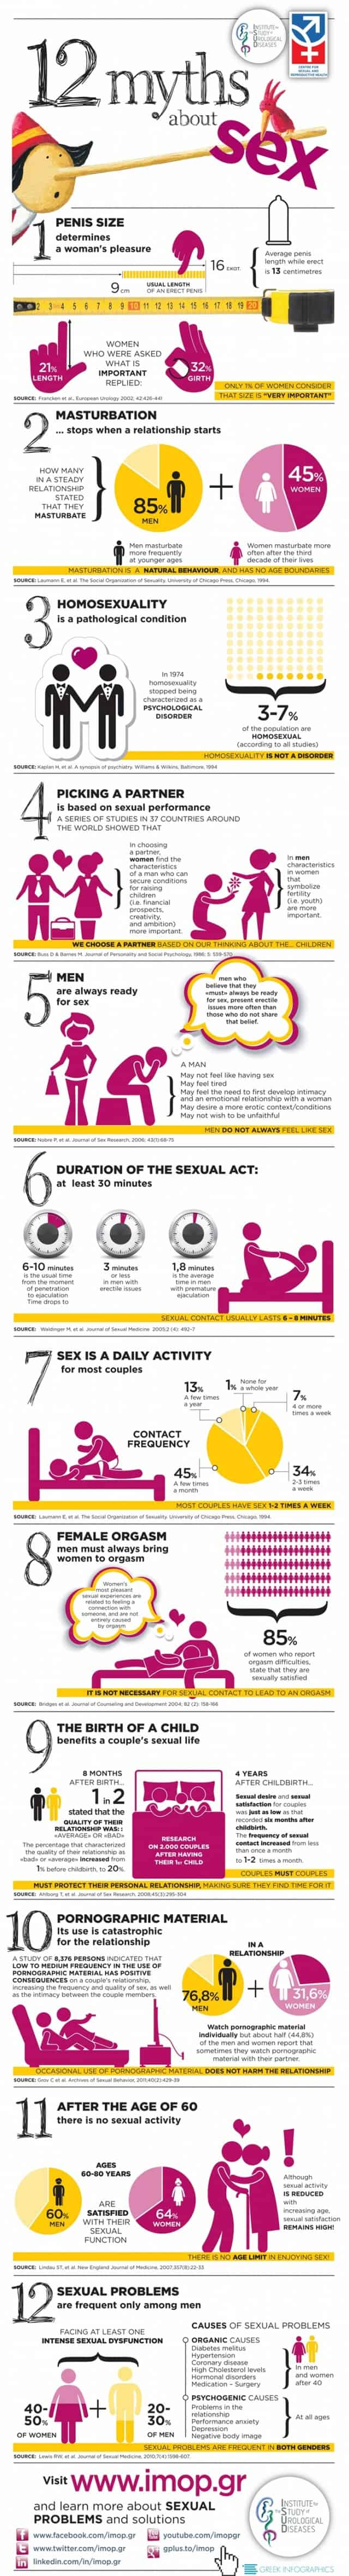 12-myths-about-sex_51438561daaaa_w1805-640x4726